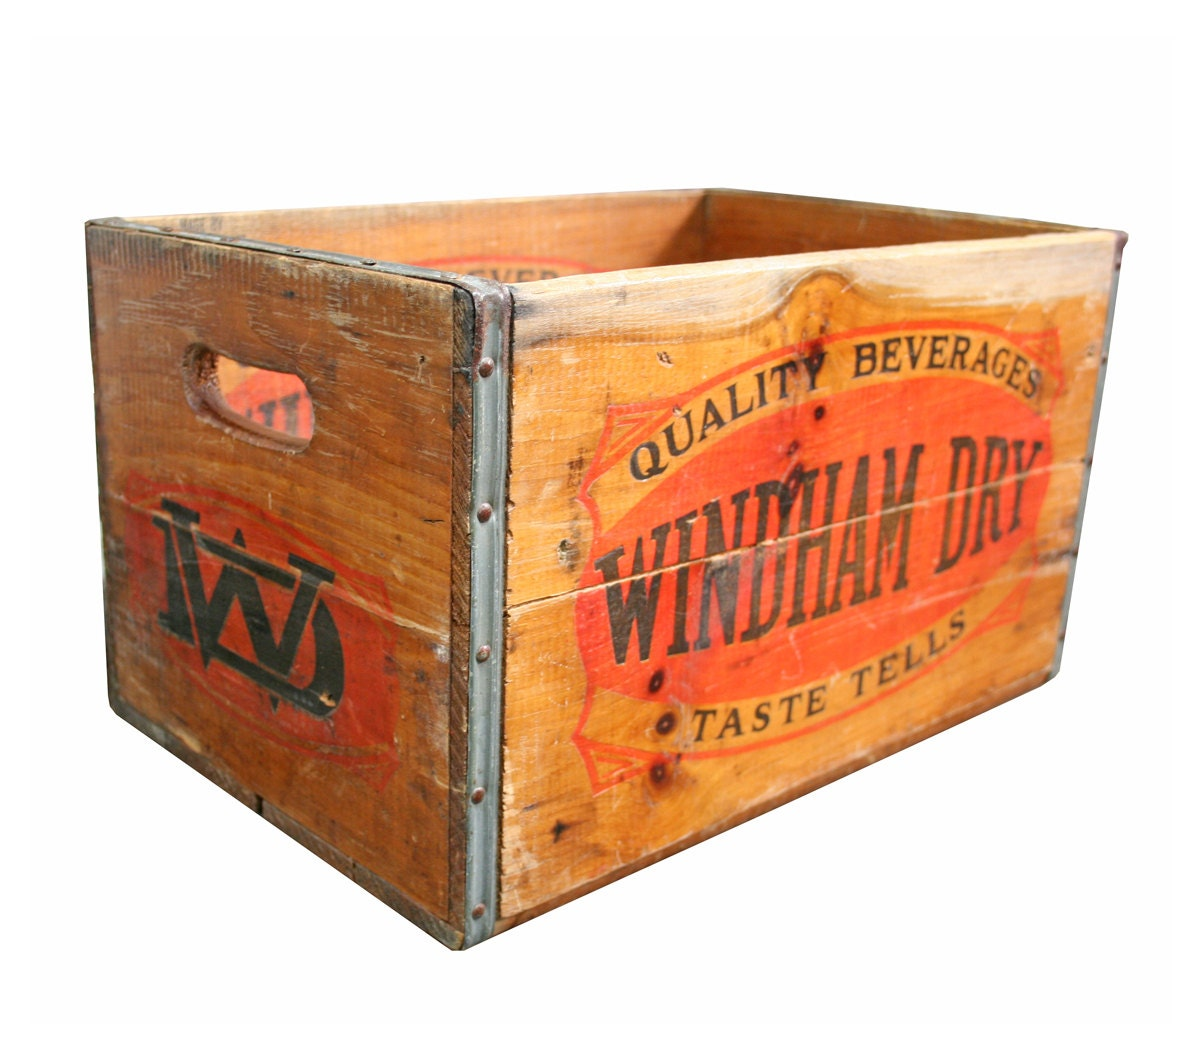 Vintage Industrial Wood Crate -- Windham Dry Beverage Crate